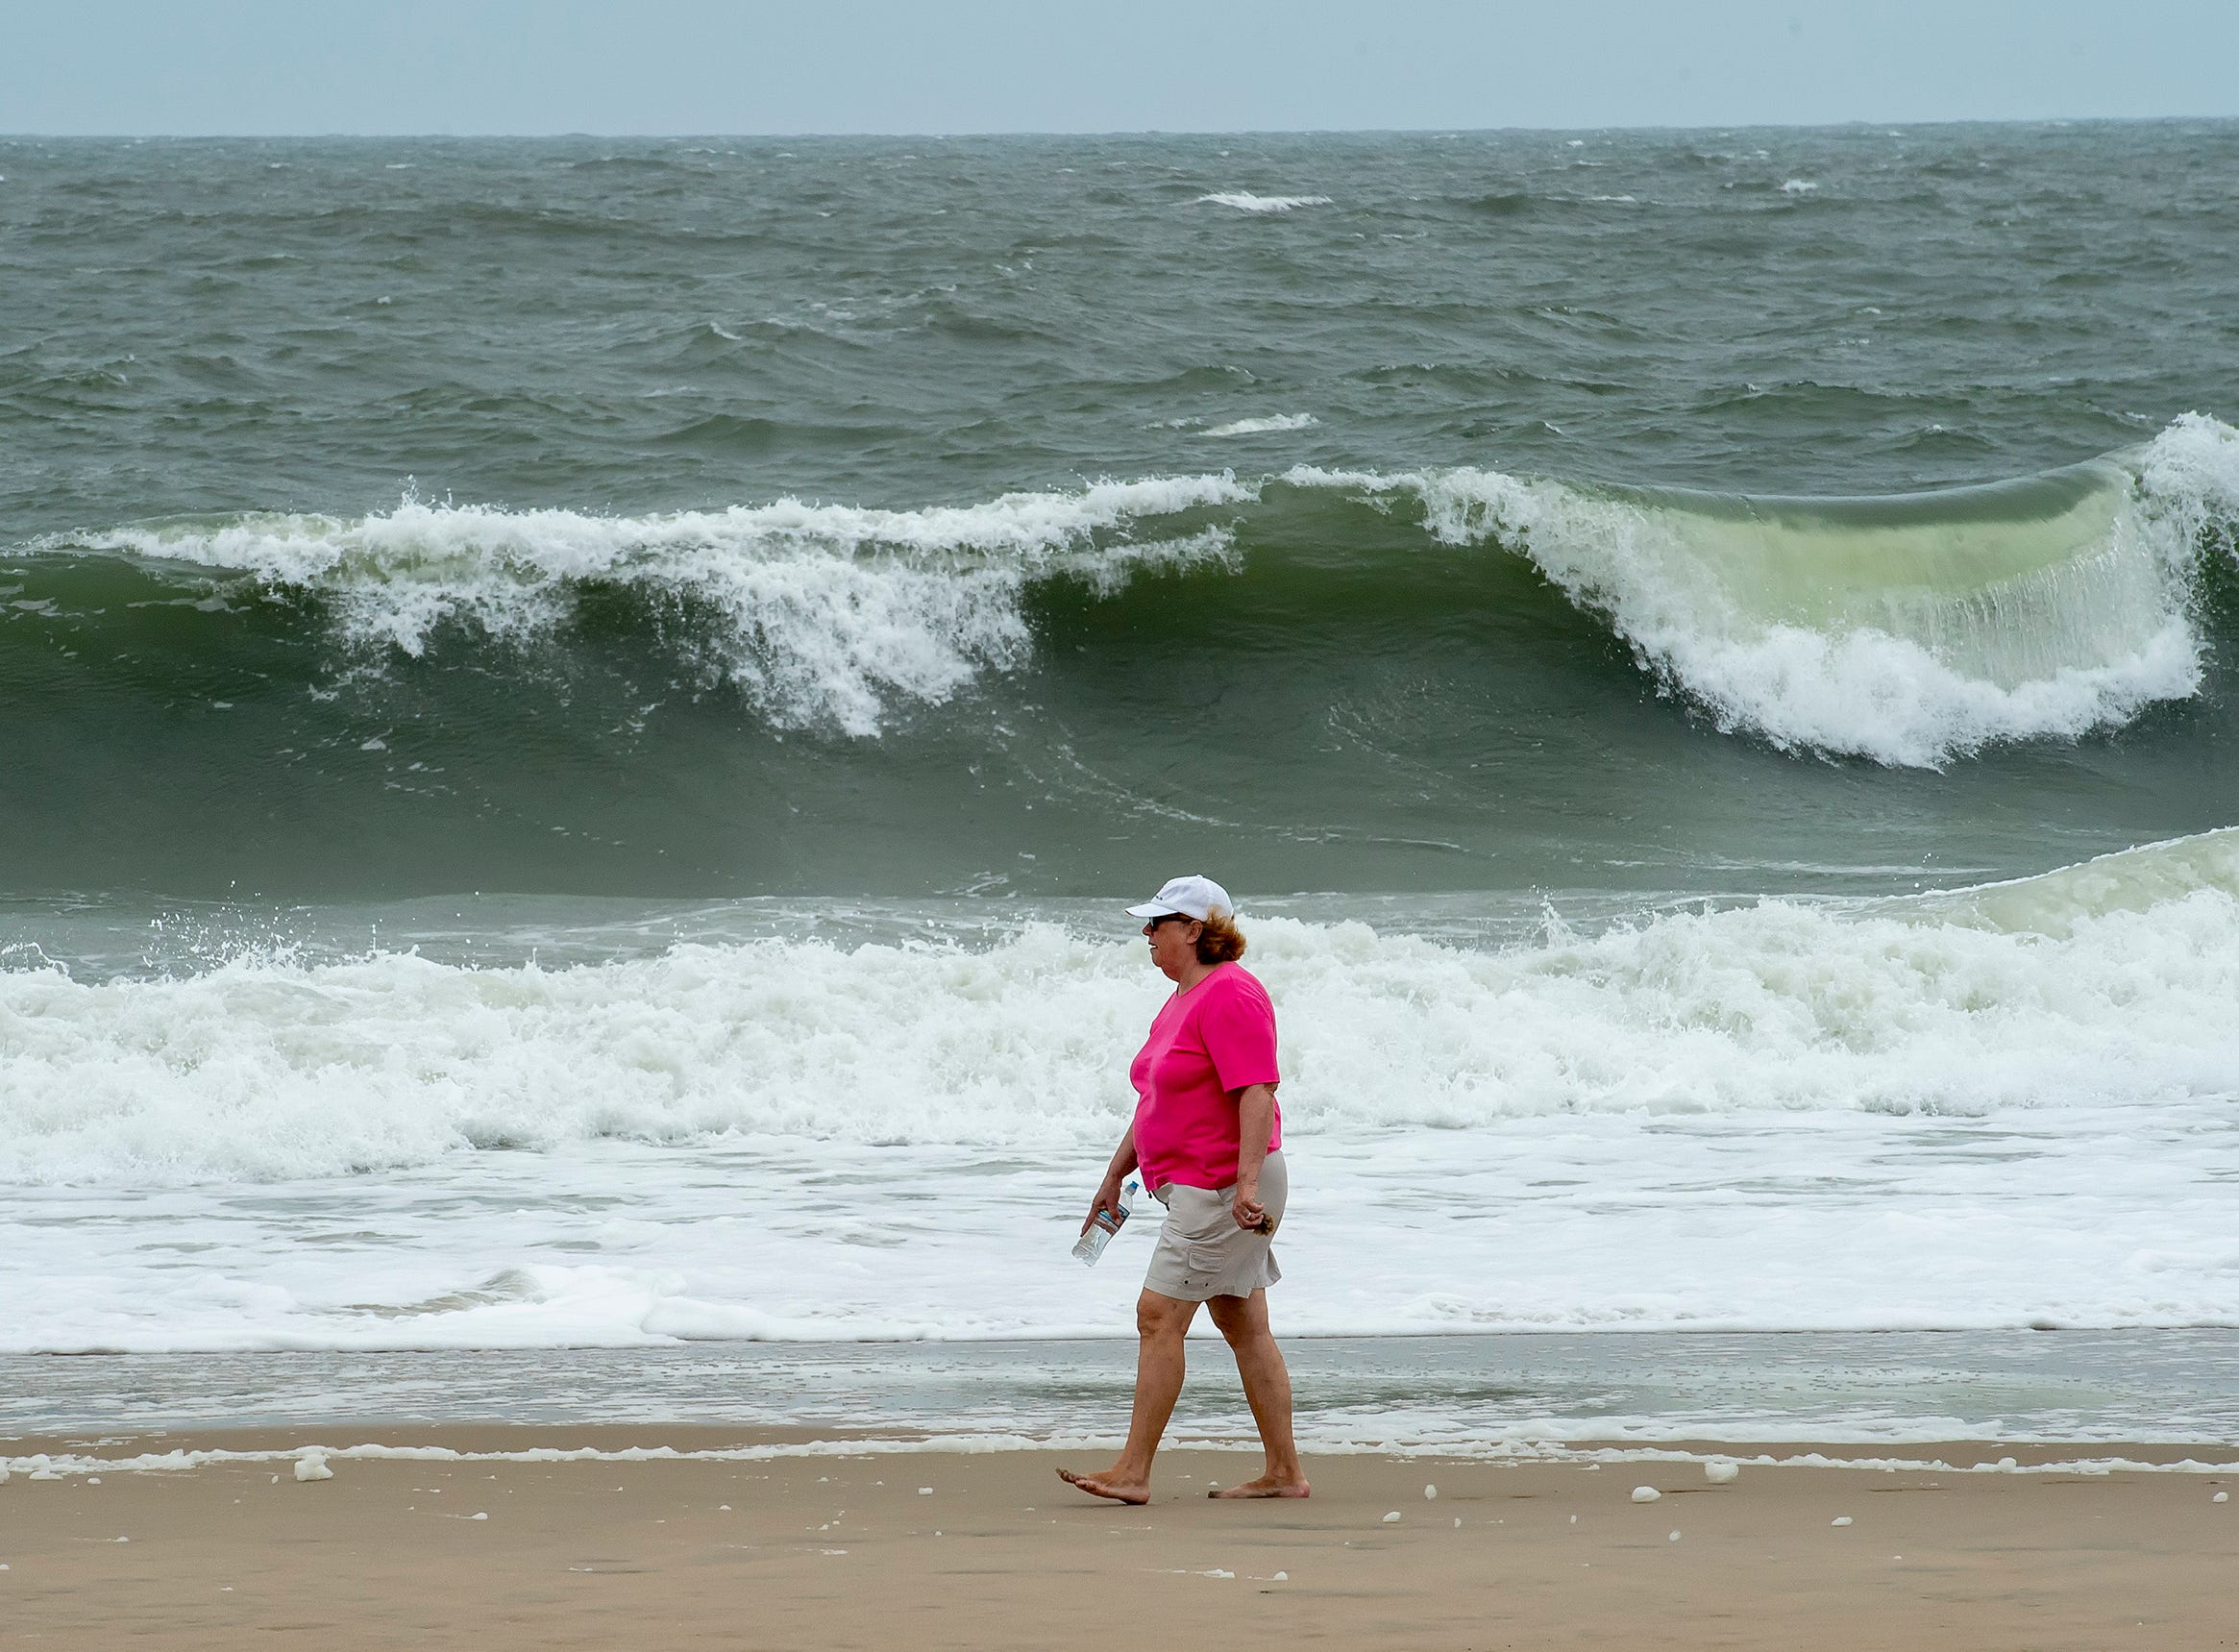 View of surf conditions at Bethany Beach after Hurricane Florence made landfall in North Carolina.